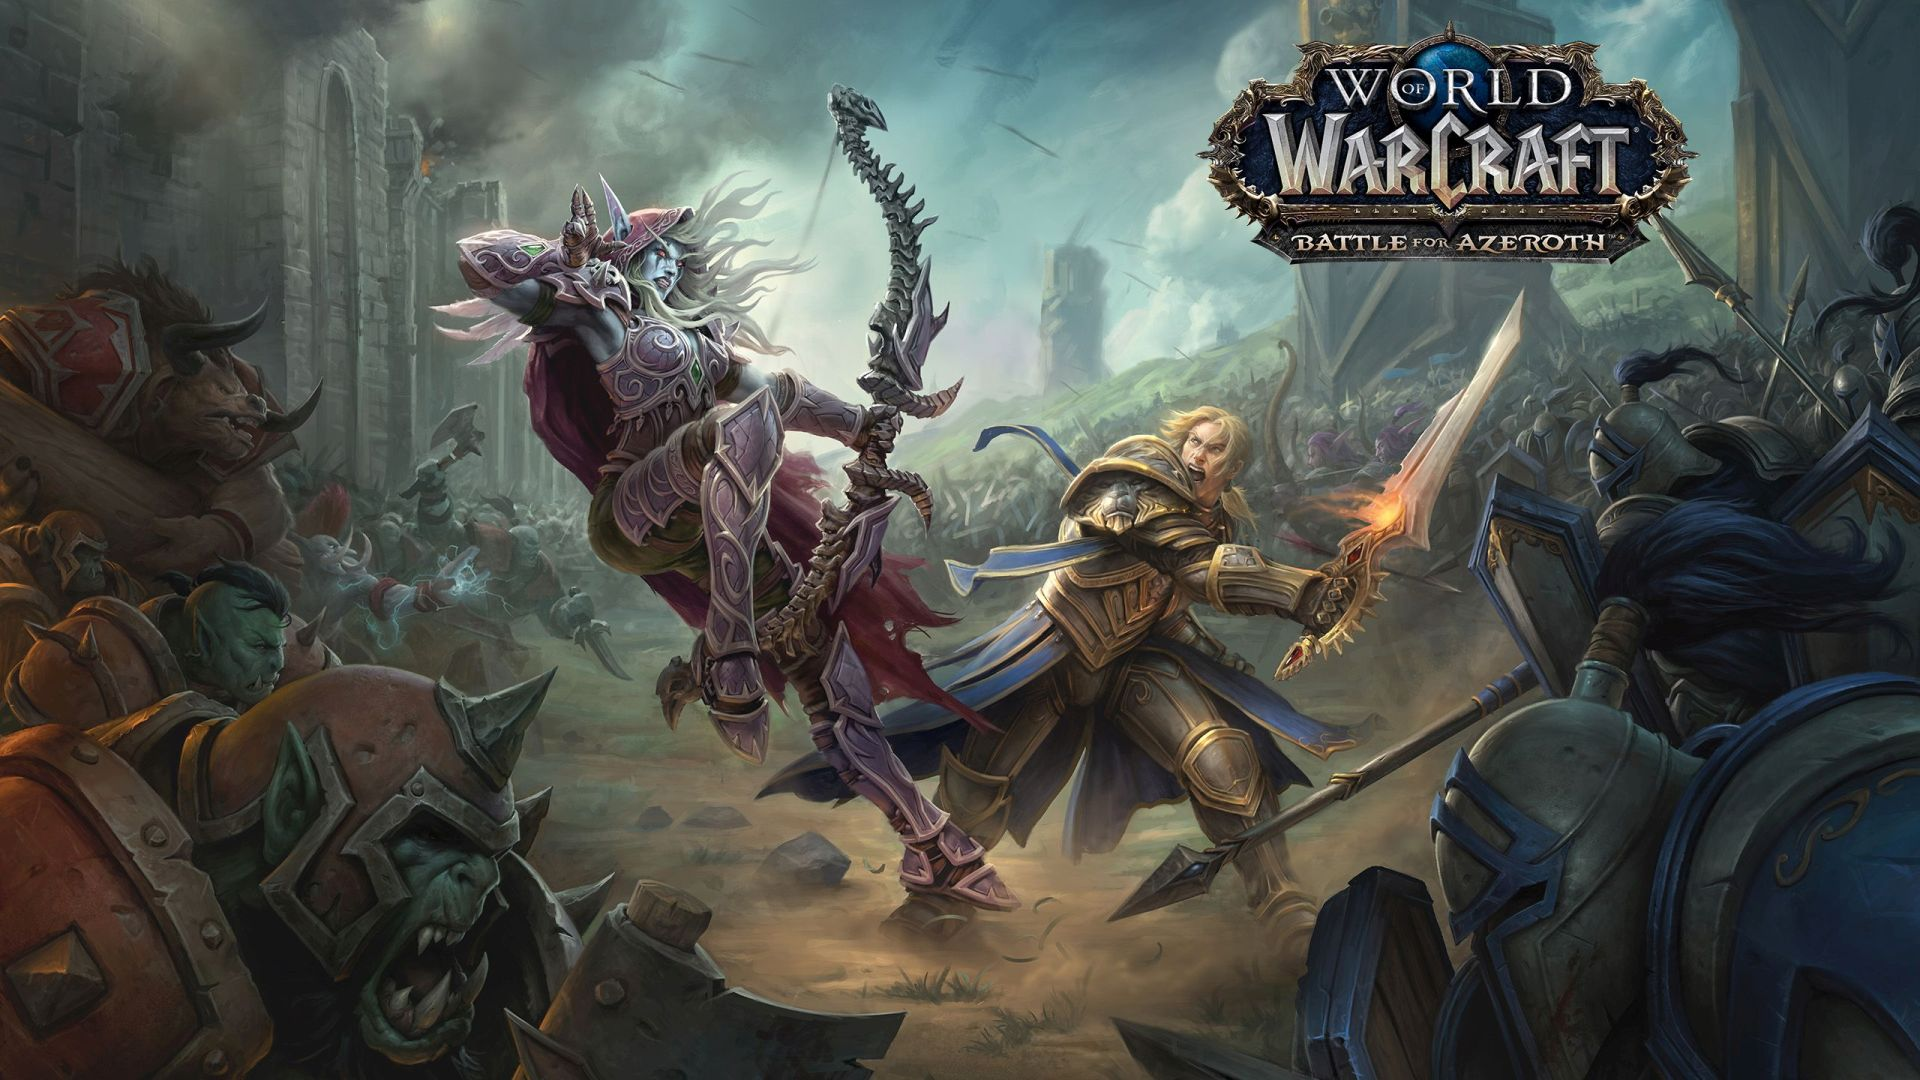 World of Warcraft predstavio Battle for Azeroth ekspanziju i Classic koji nas vraća u stare dane